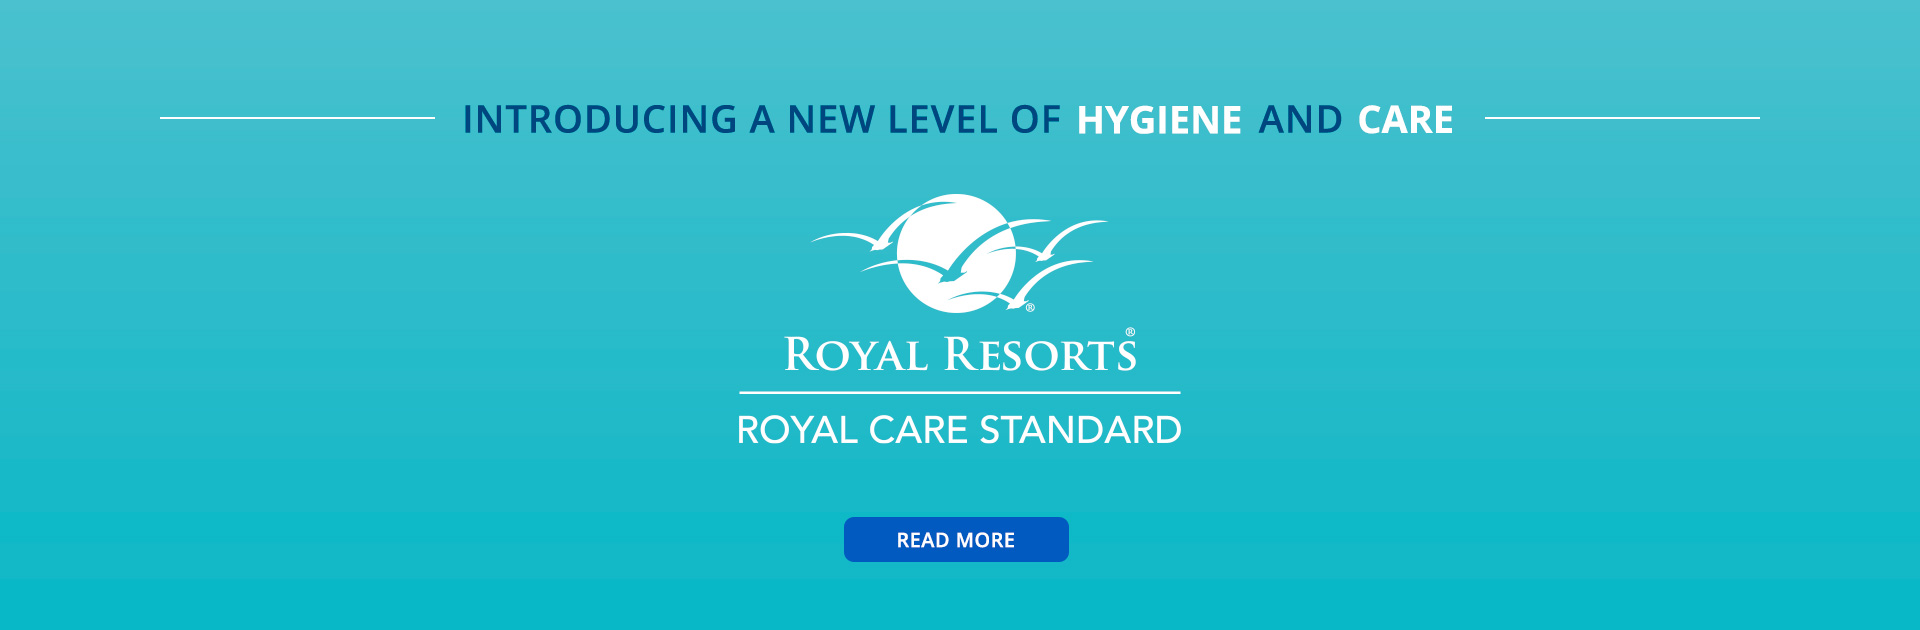 Introducing a new level of hygiene and care Royal Care Standard